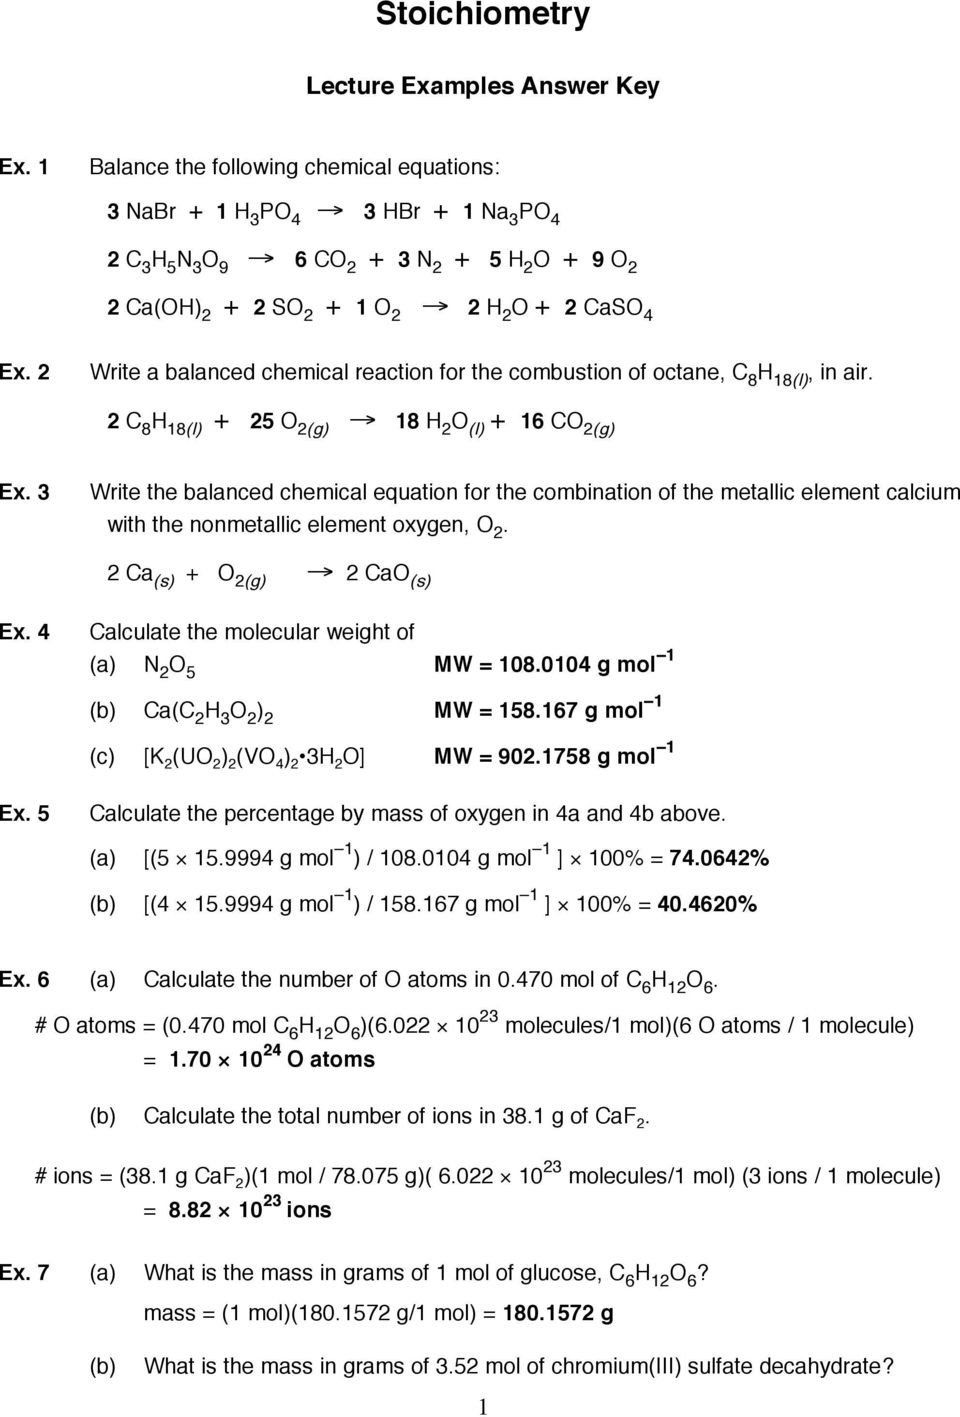 Introduction to Stoichiometry Worksheet Stoichiometry